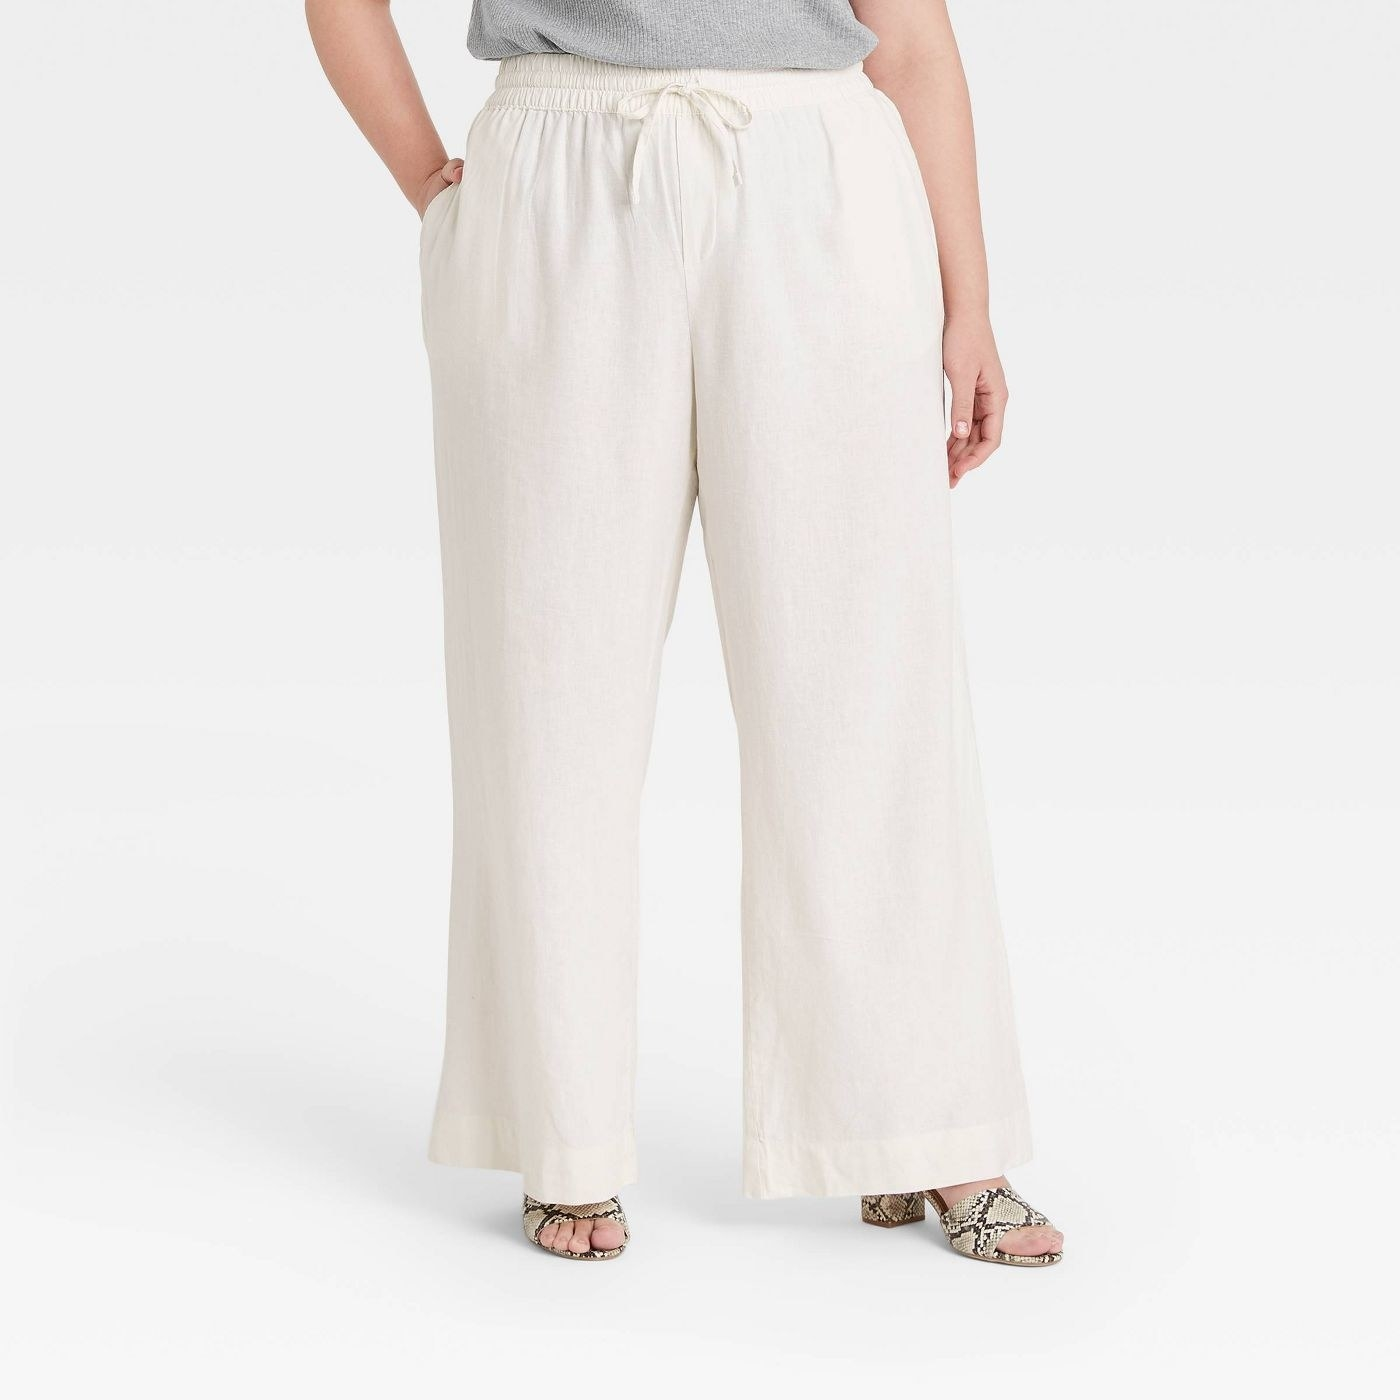 Model wearing off-white pants with an elastic waits band tie